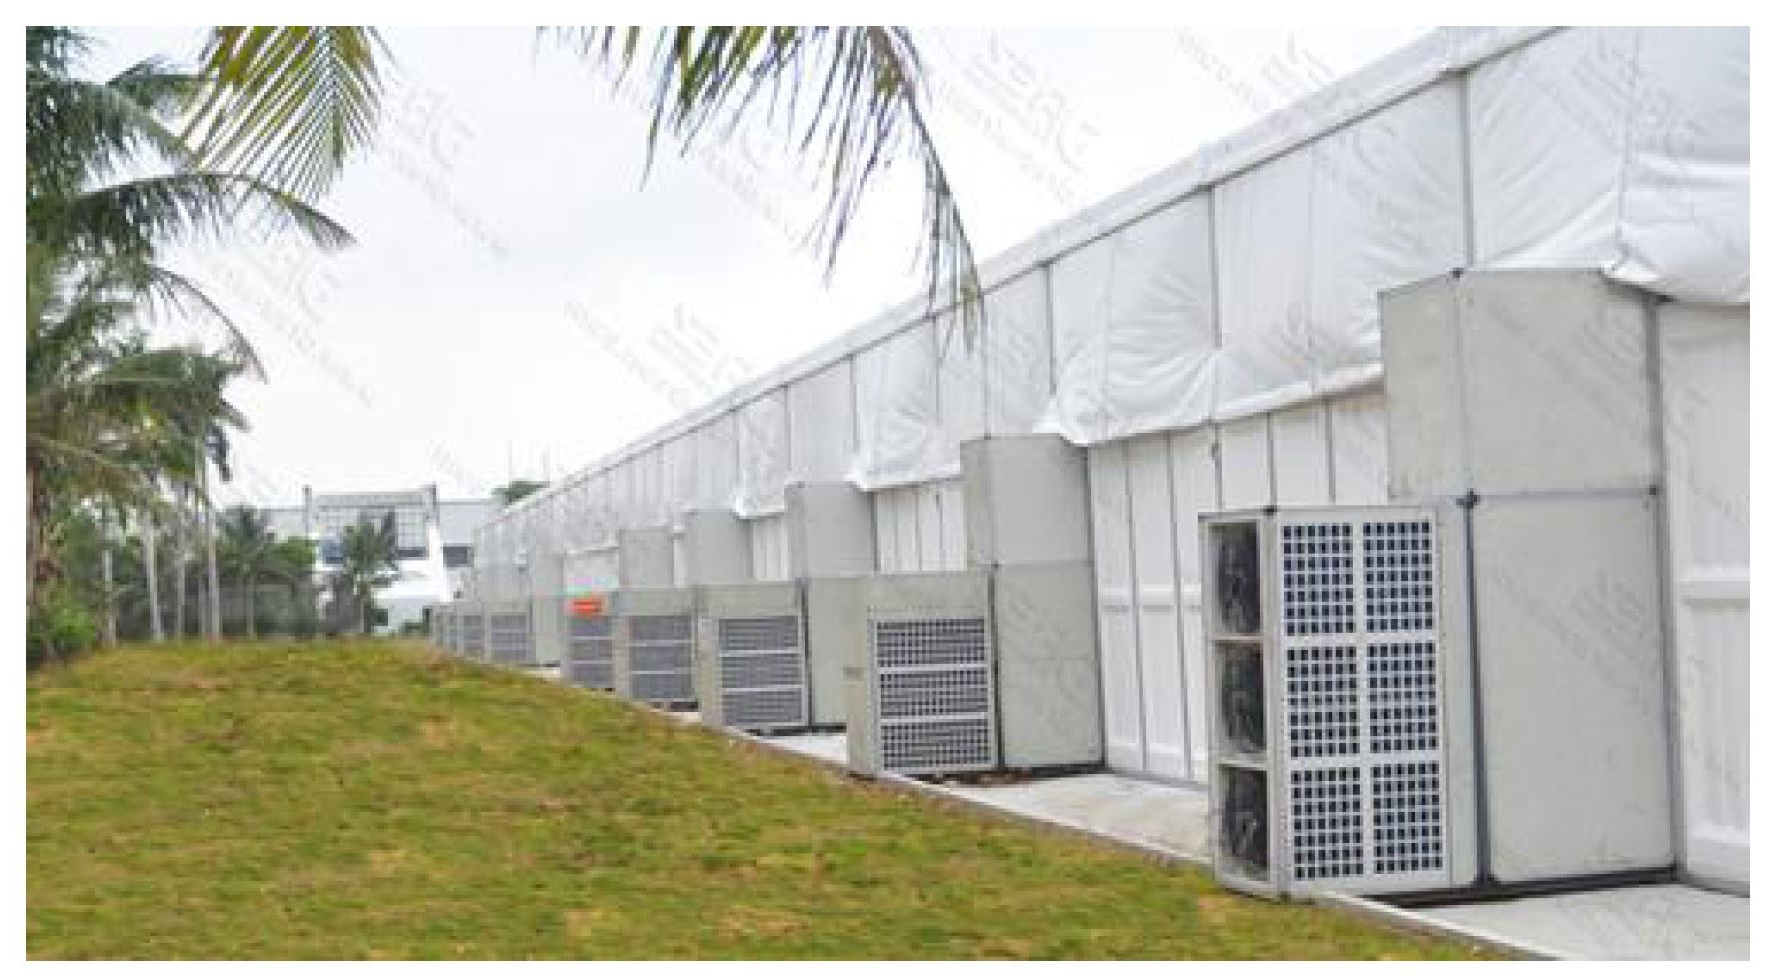 Tent Air Conditioner rental & Tent air conditioning u2013 Air conditioners